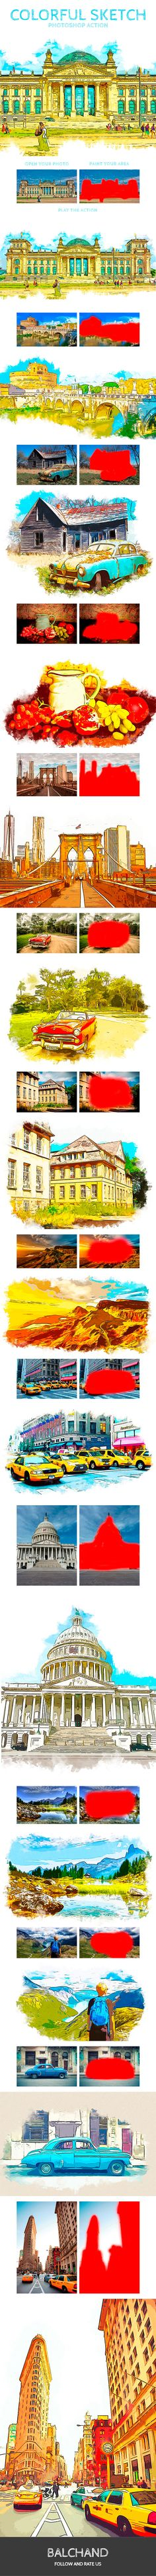 Colorful Sketch Photoshop Action - Photo Effects Actions